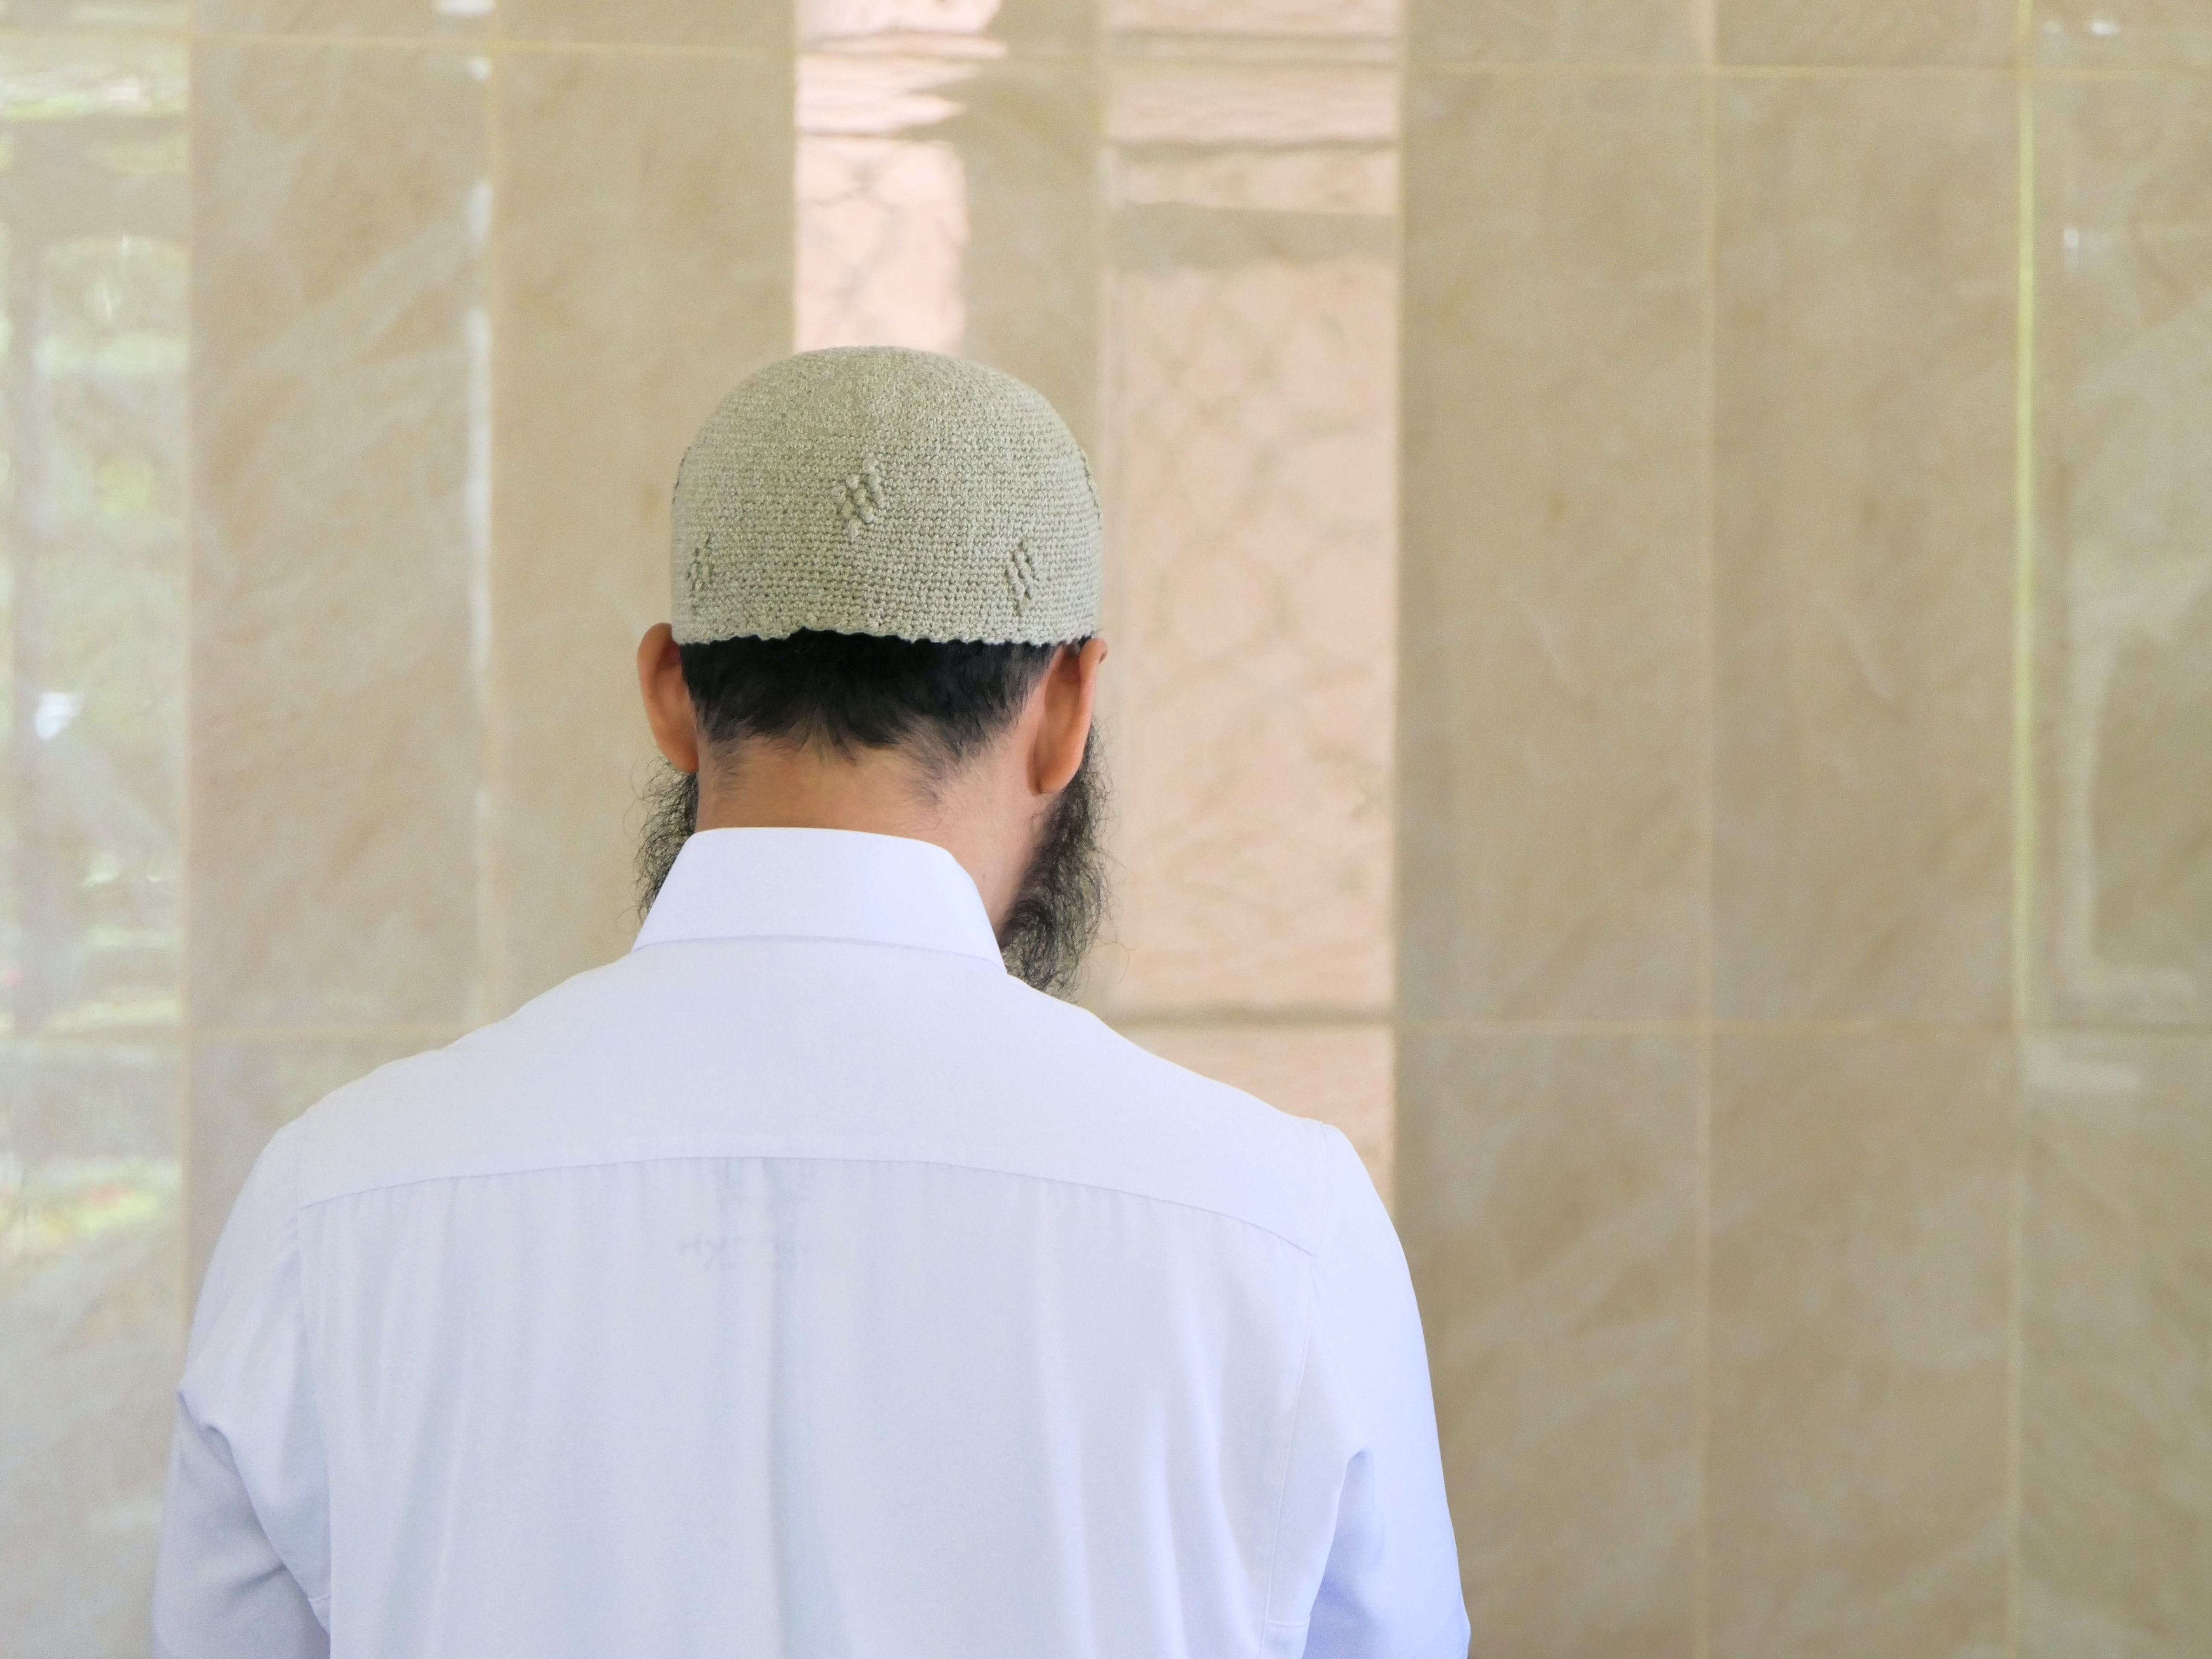 How to pray for Muslims in lockdown during Ramadan